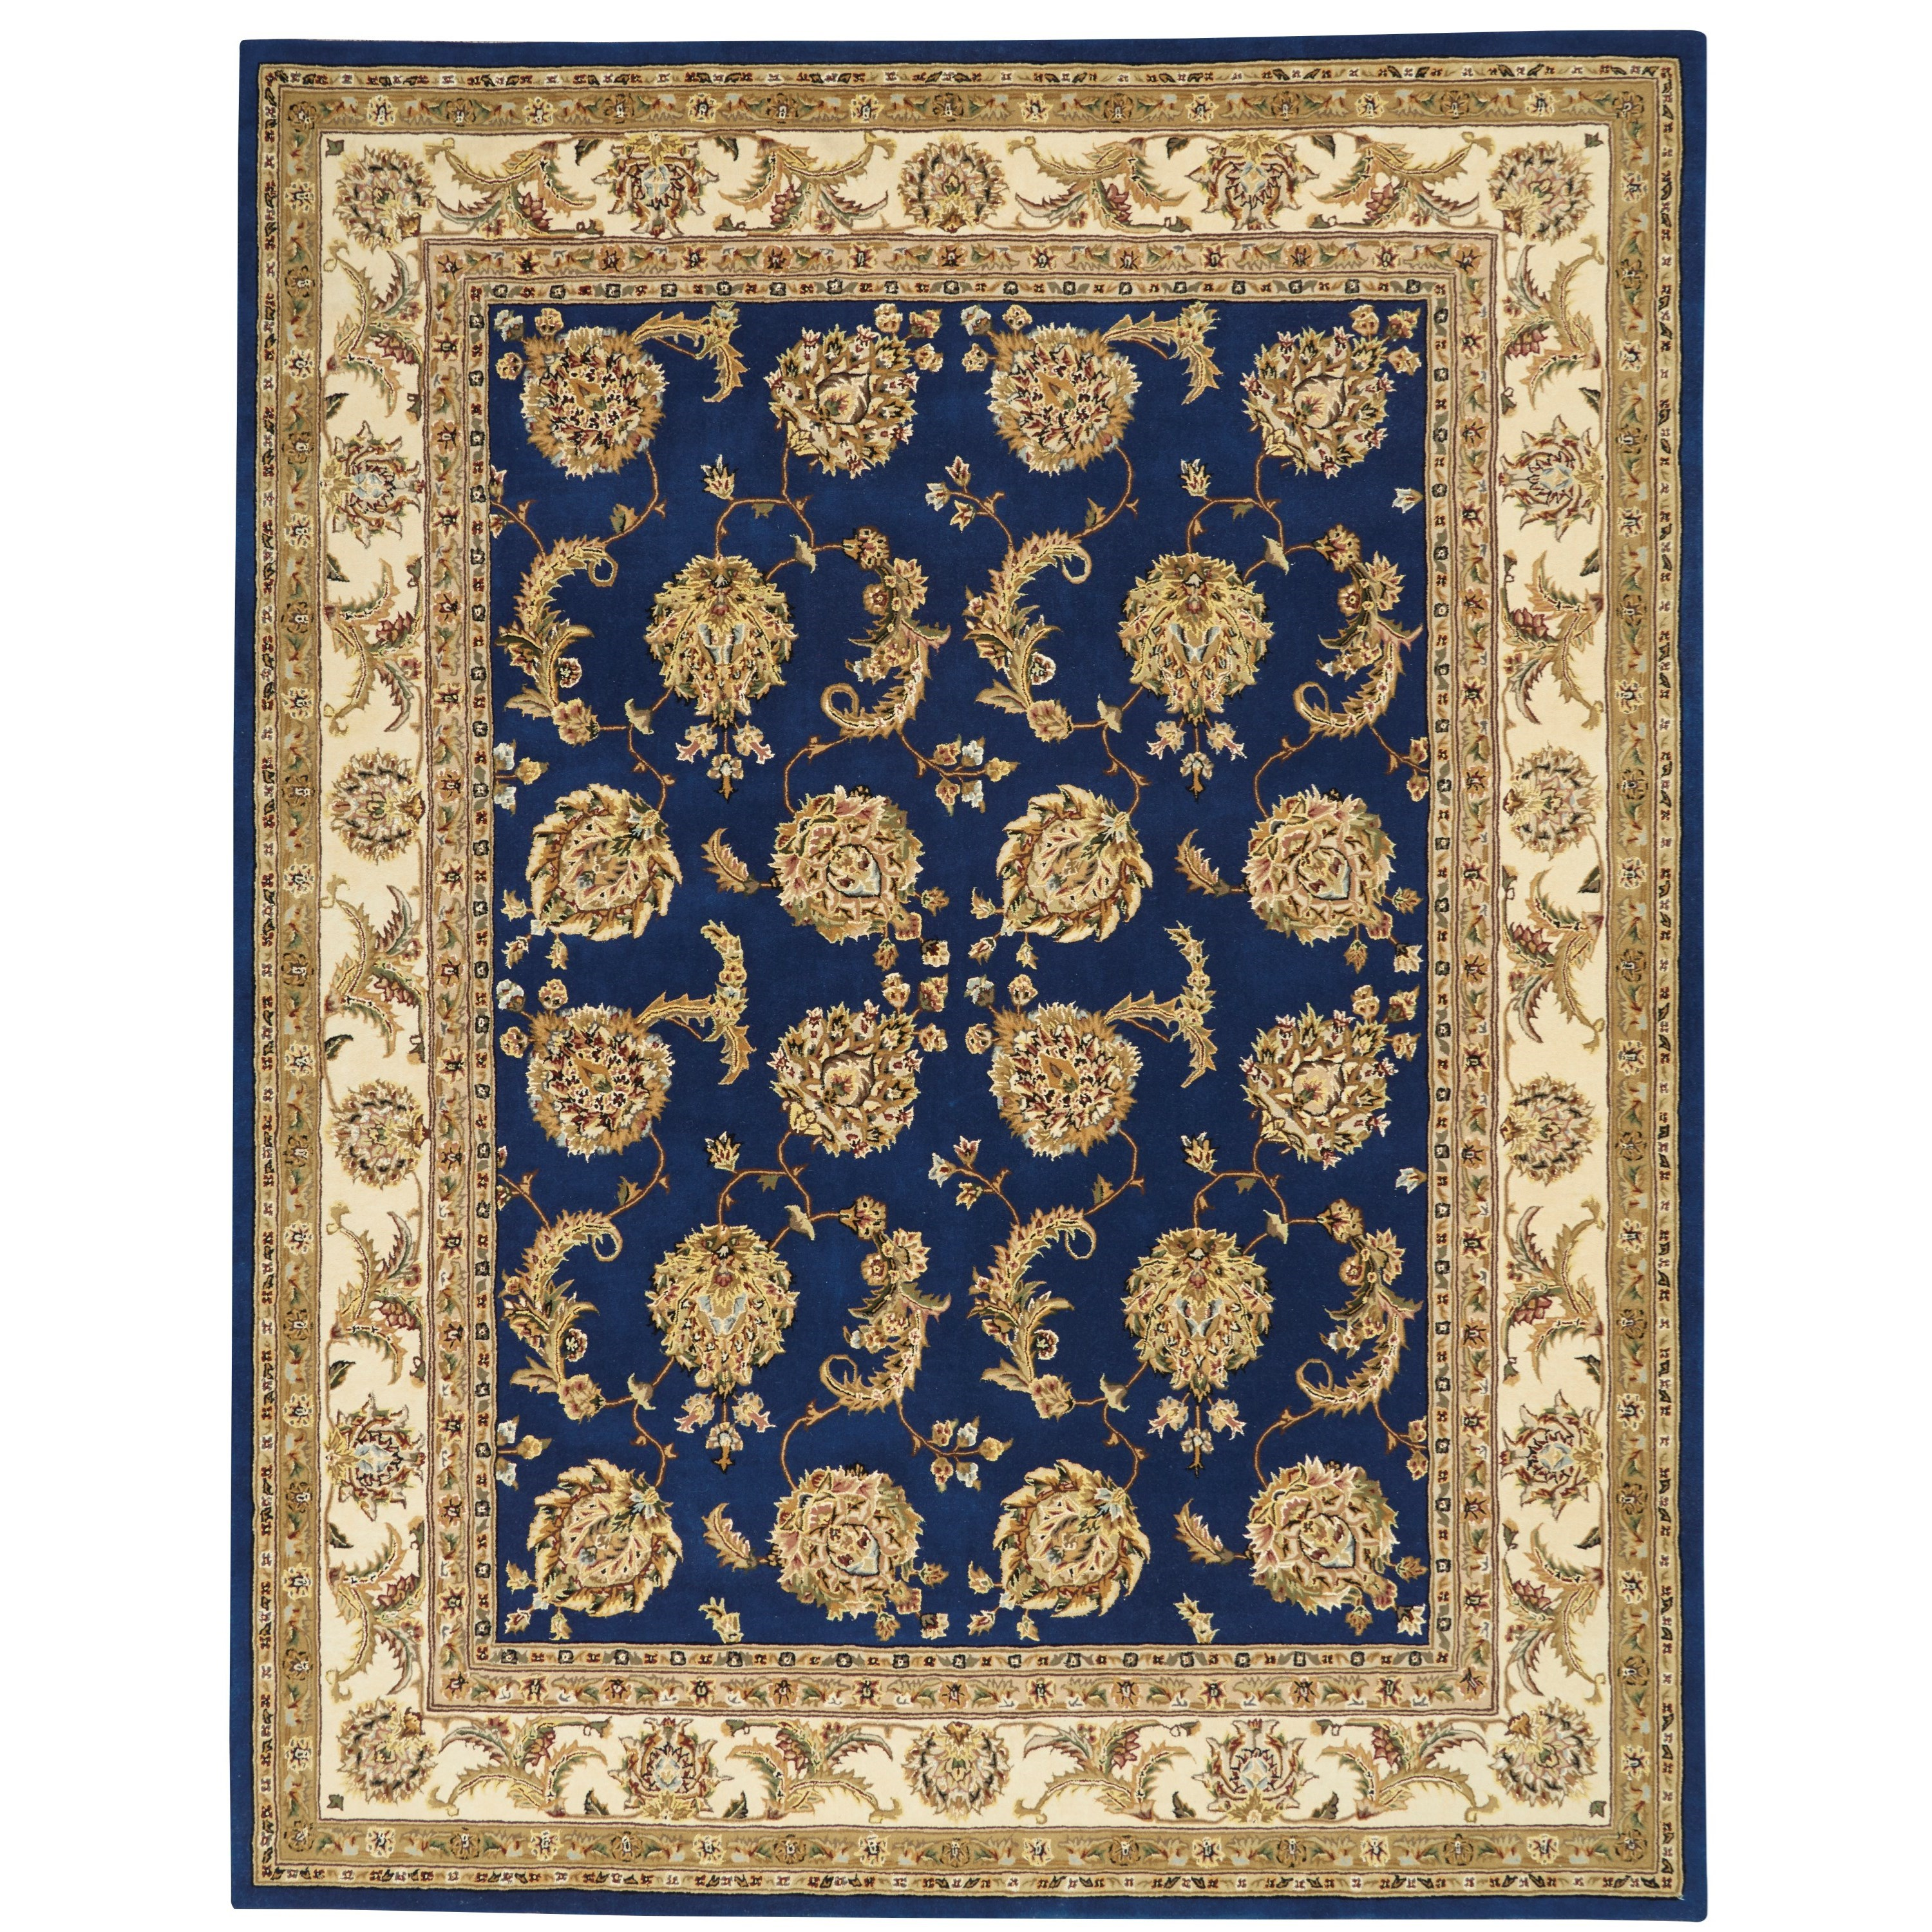 Nourison 2000 2000 9' x 12' Navy Area Rug by Nourison at Home Collections Furniture